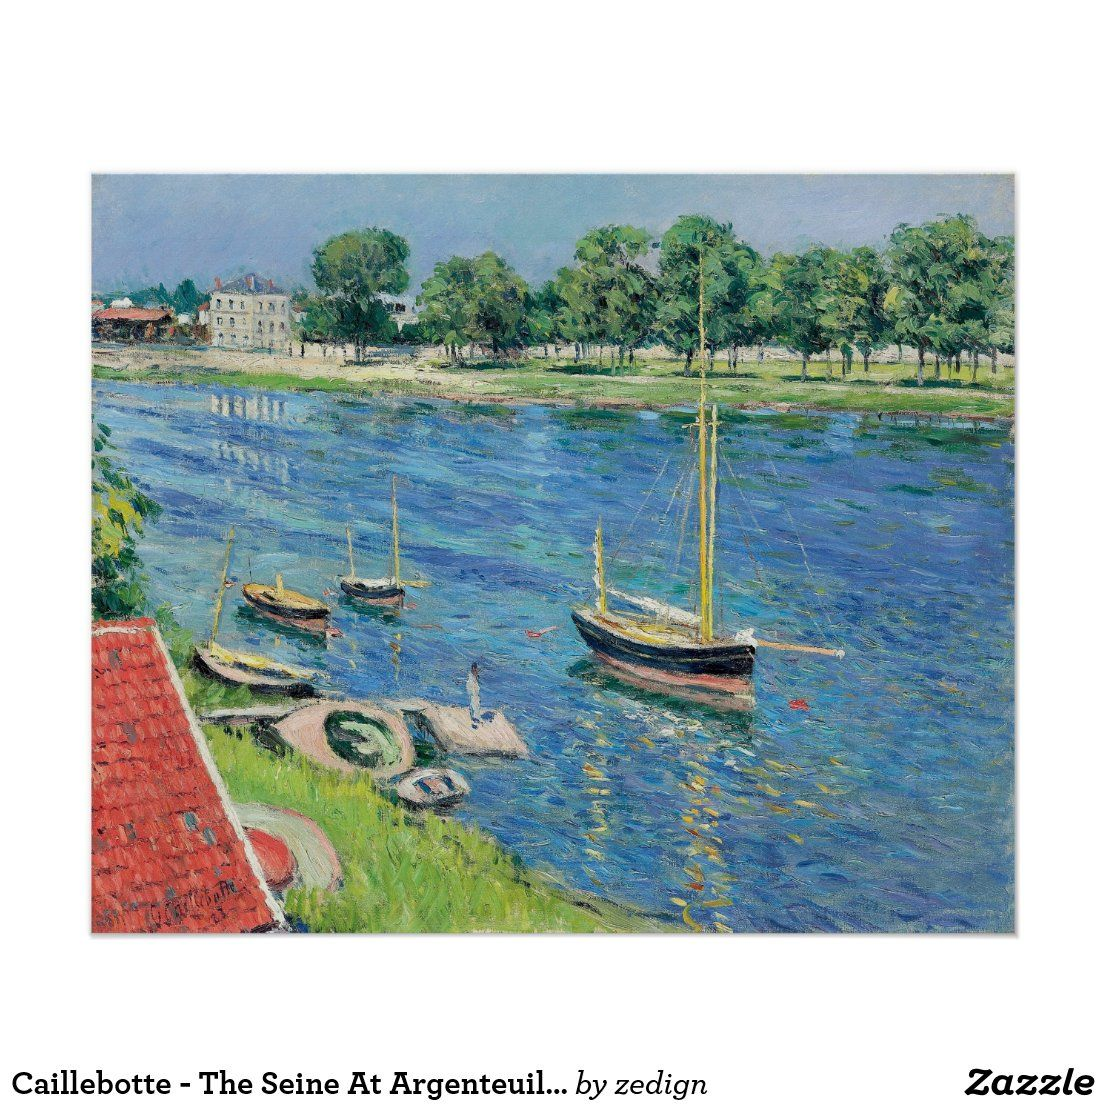 Caillebotte - The Seine At Argenteuil. Boats Poster. #art #poster